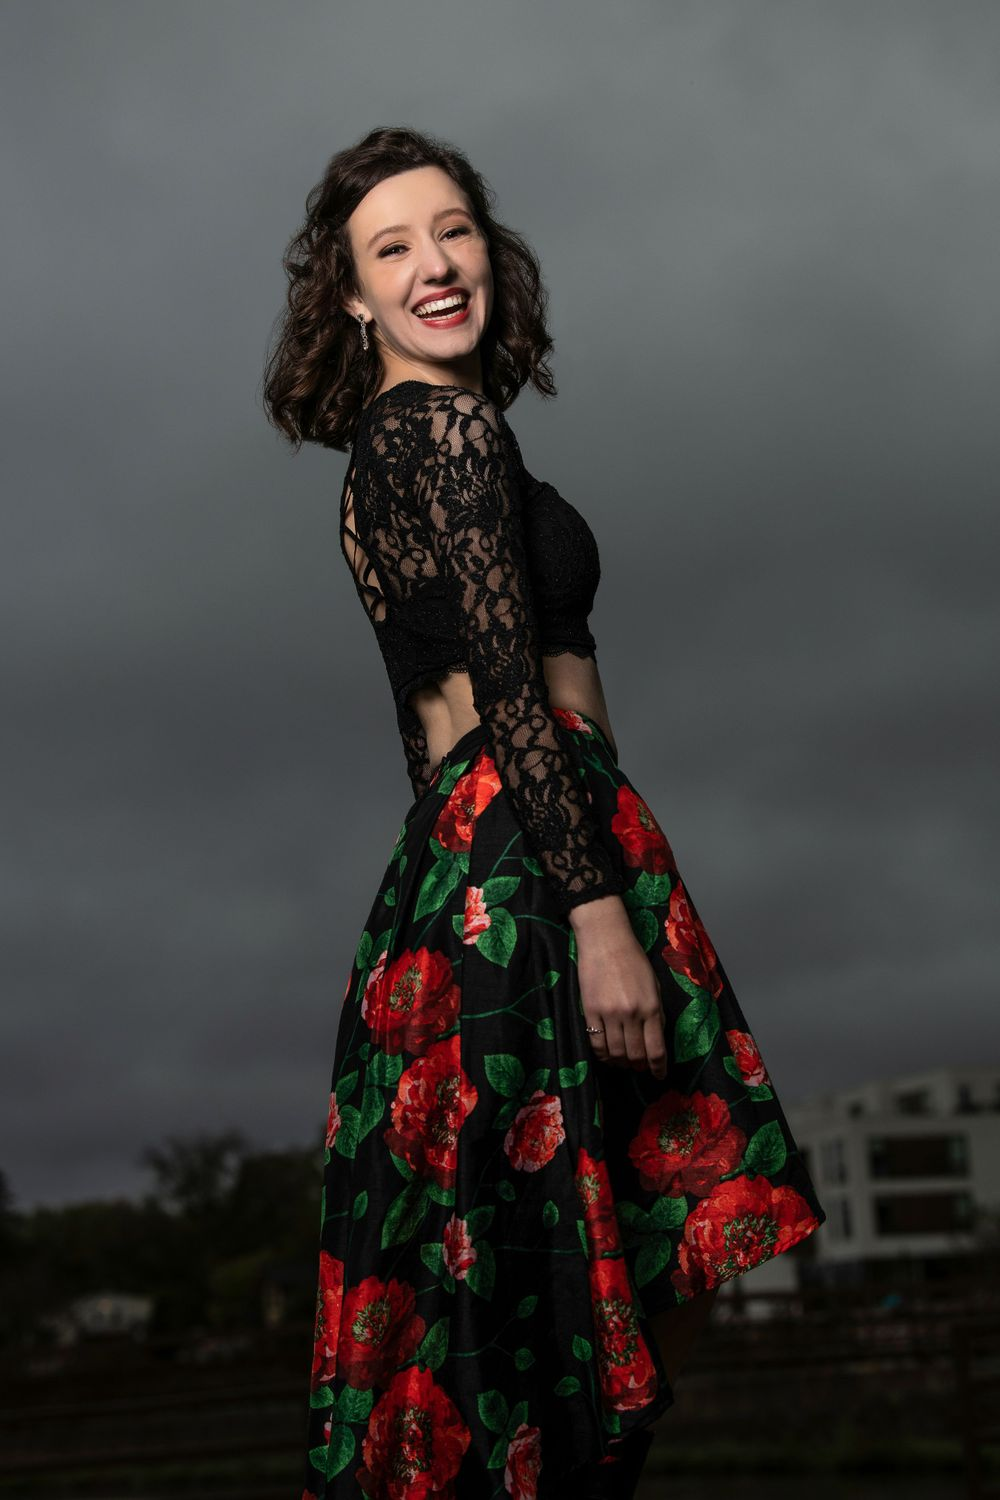 Floral prom dress, senior photos